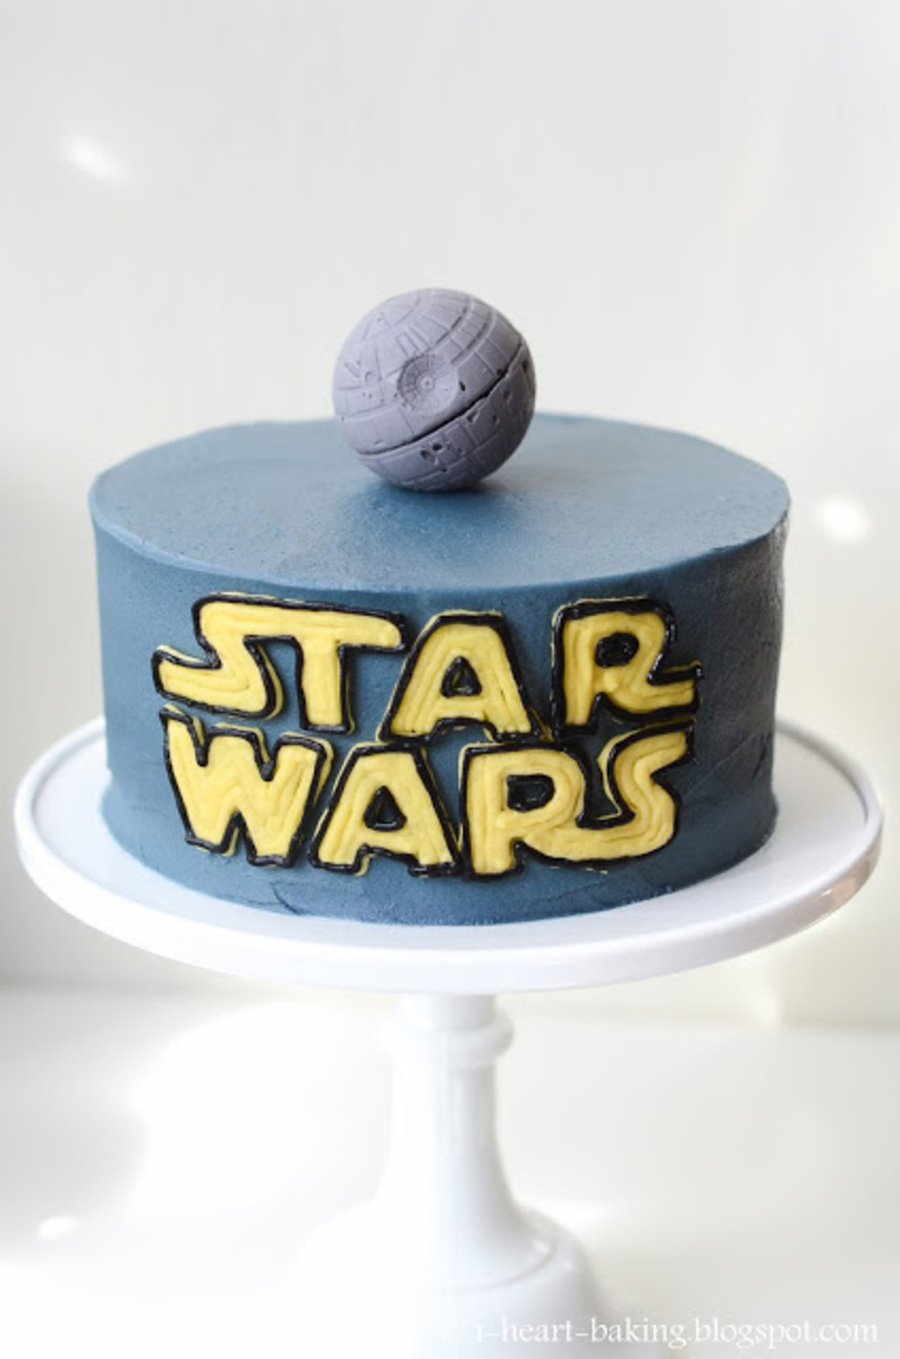 Star Wars Cake With Handmade Chocolate Death Star on Cake Central